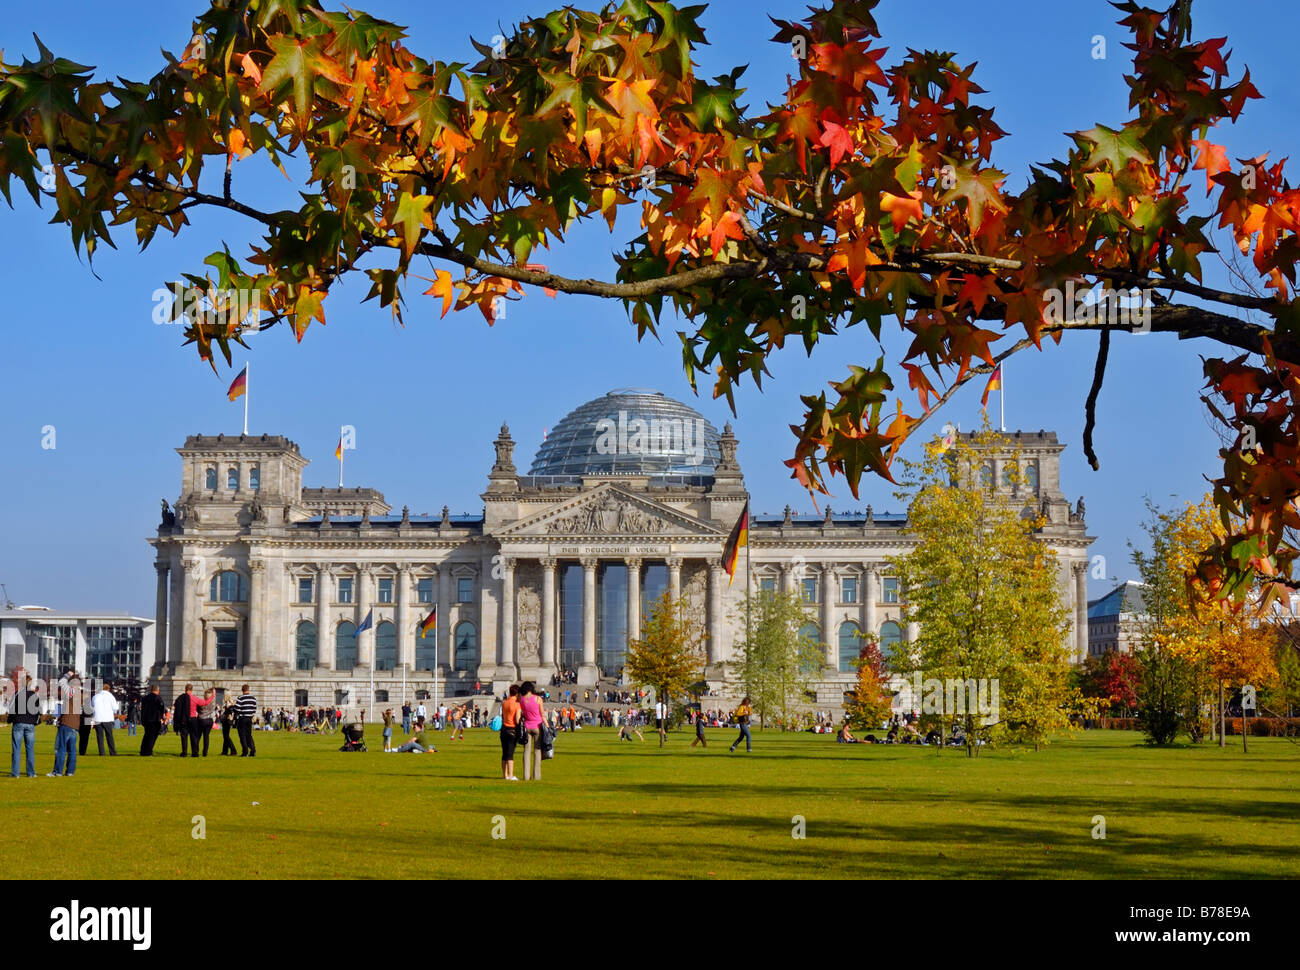 Tourists in front of the Reichstag building in autumn, seat of the German Bundestag, government district, Bezirk - Stock Image